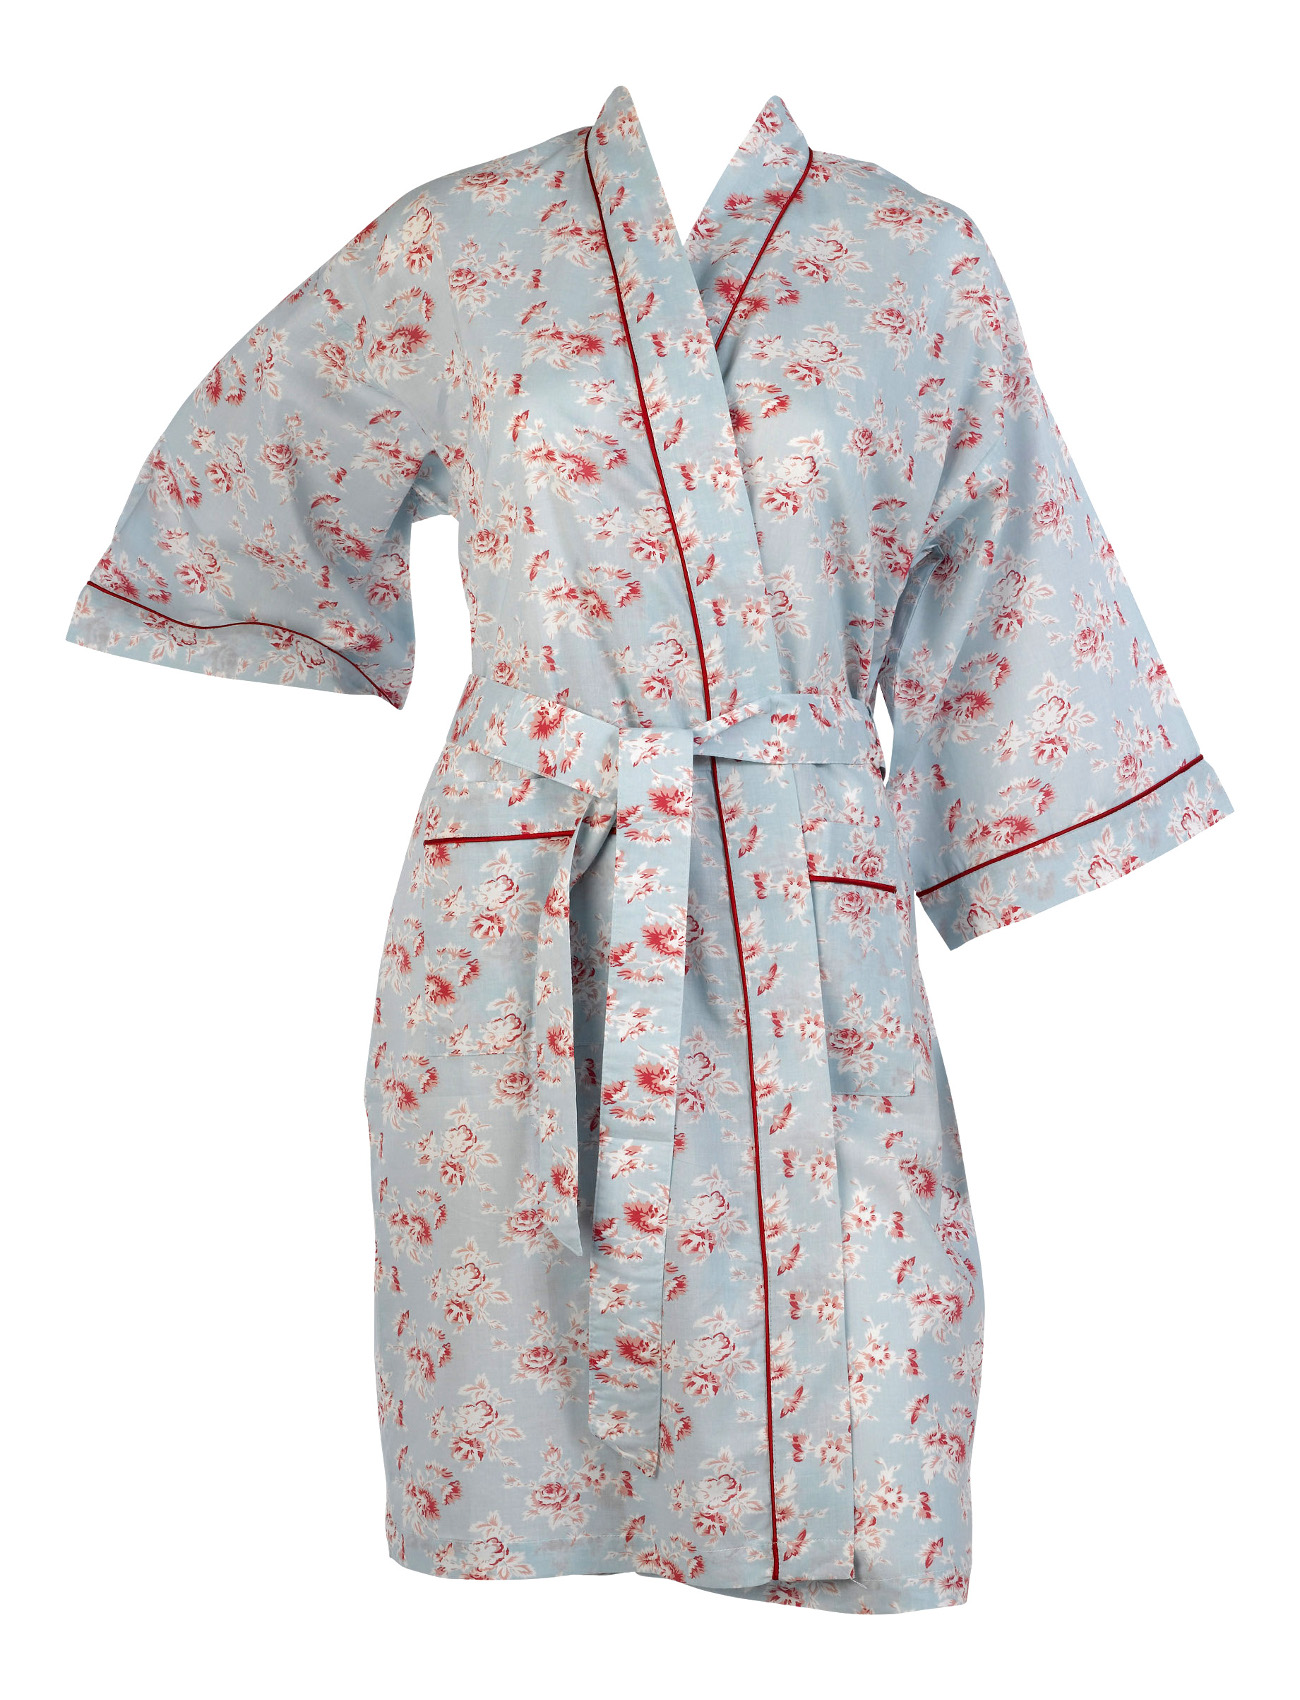 Bathrobe Womens 100% Cotton Vintage Flower Dressing Gown Lightweight ...